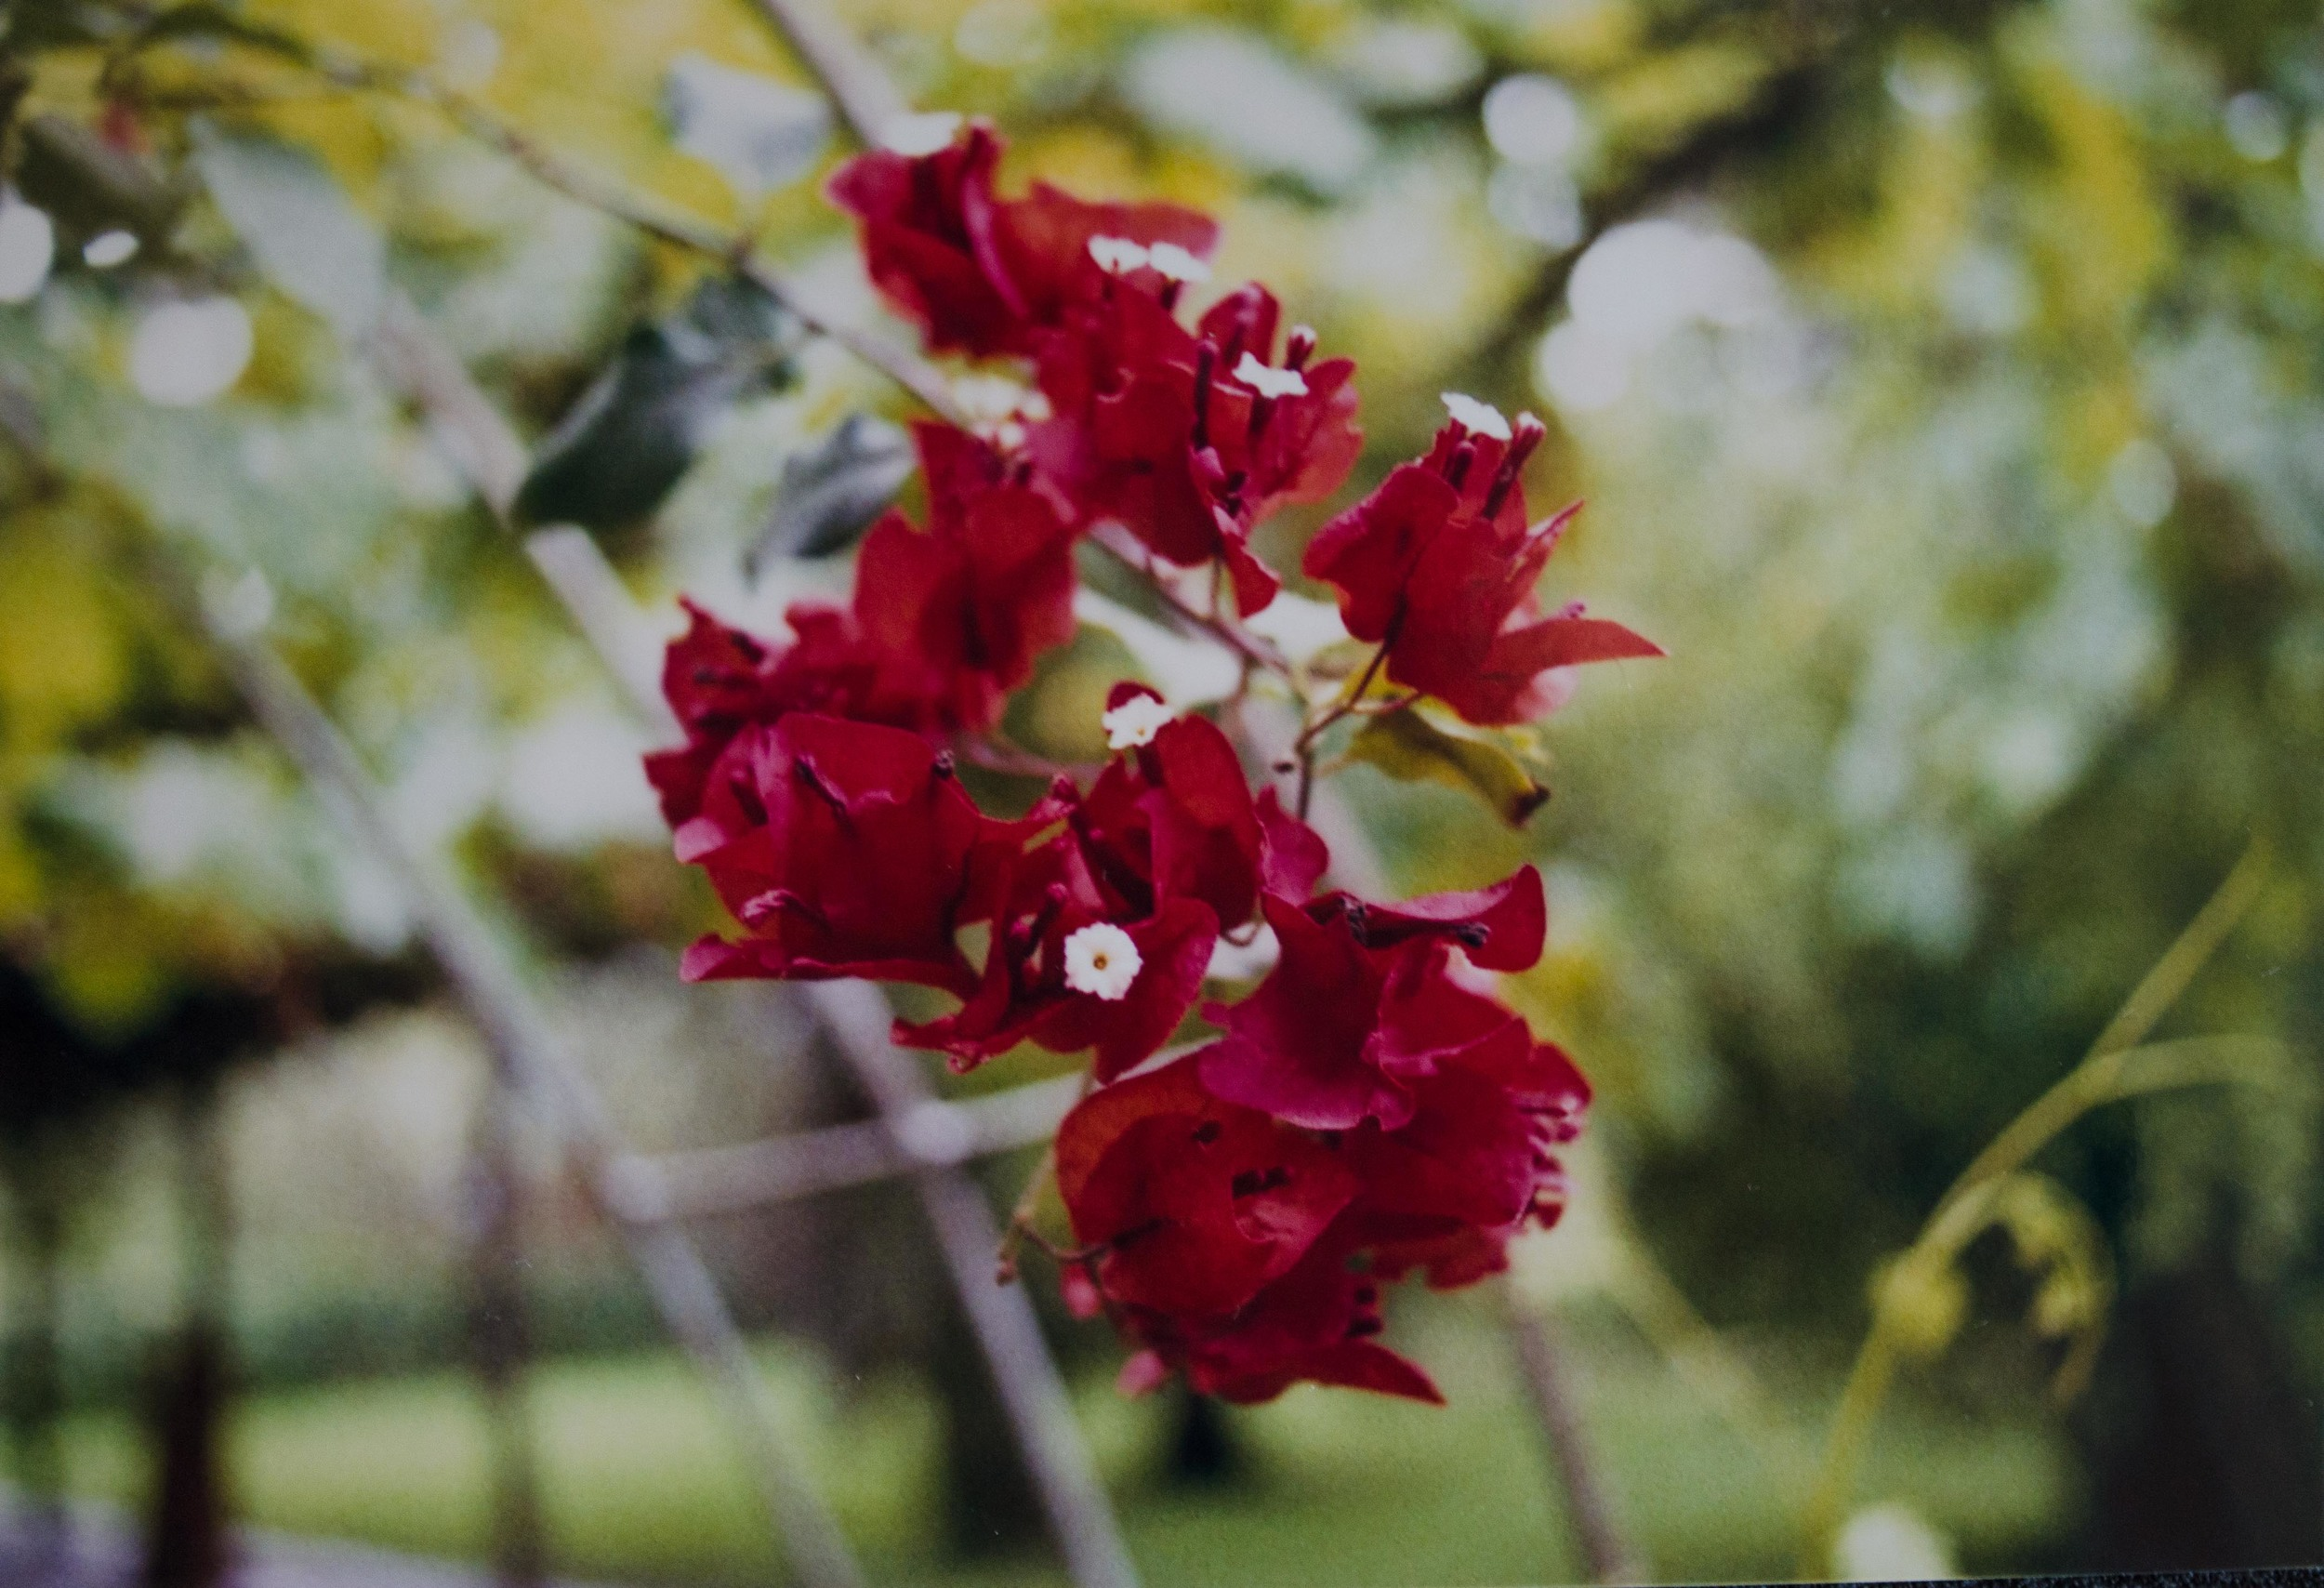 flower on a vine at the farm in Vinto // february 2015